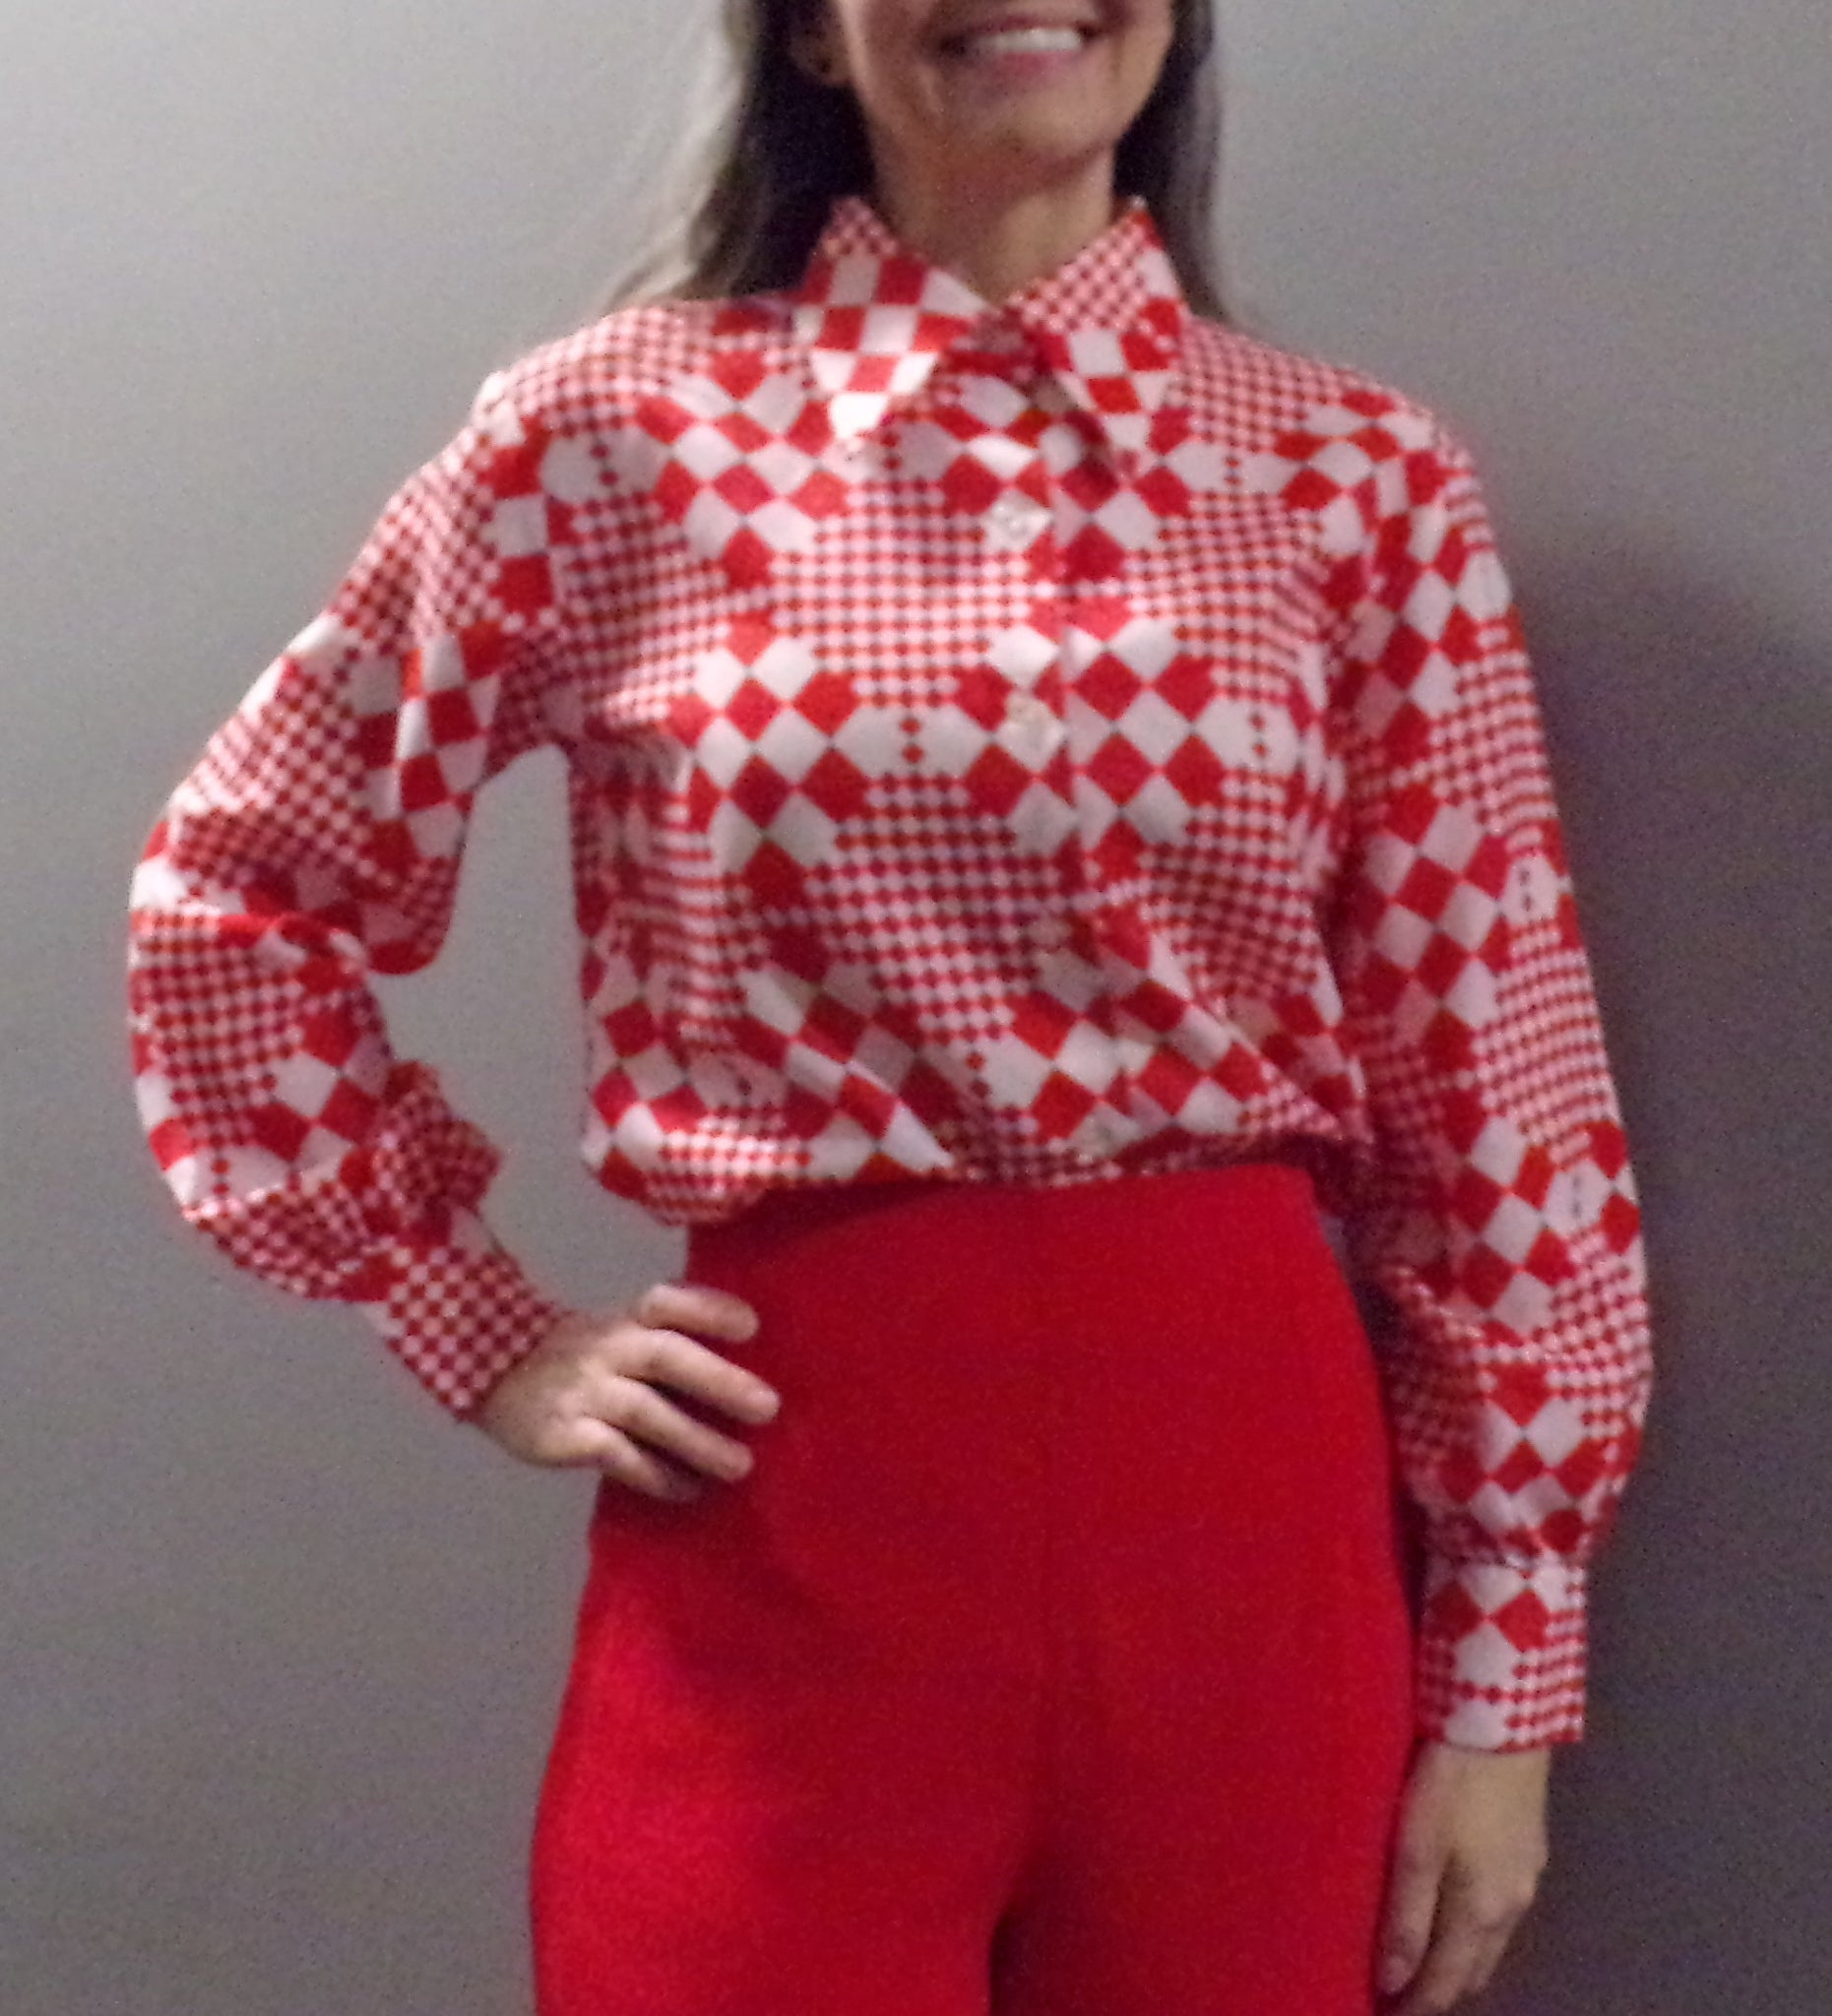 RED CHECKED BLOUSE butterfly collar 1970's button-down S M (H4)